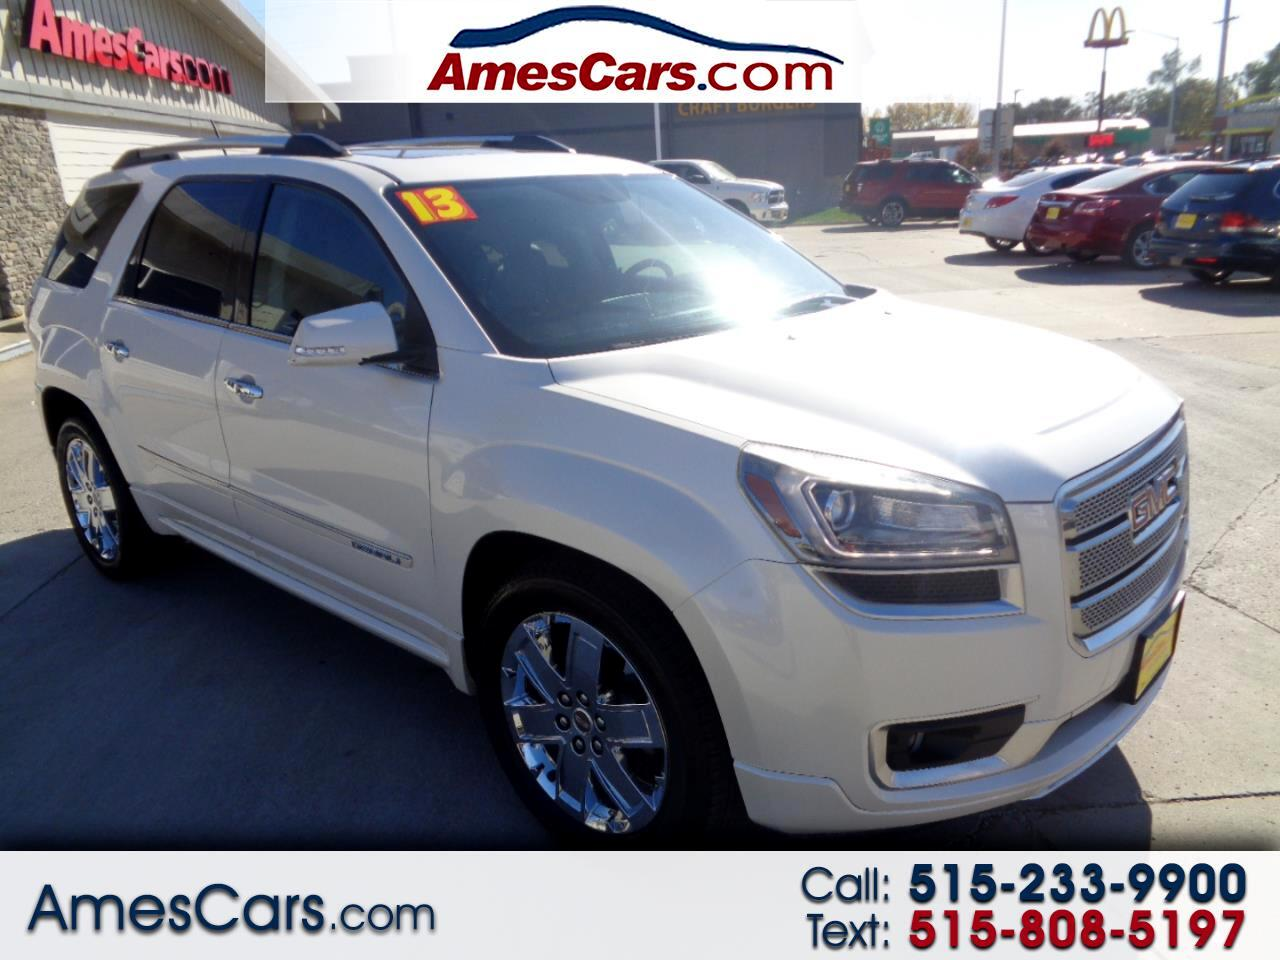 used cars for sale ames ia 50010 amescars used cars for sale ames ia 50010 amescars